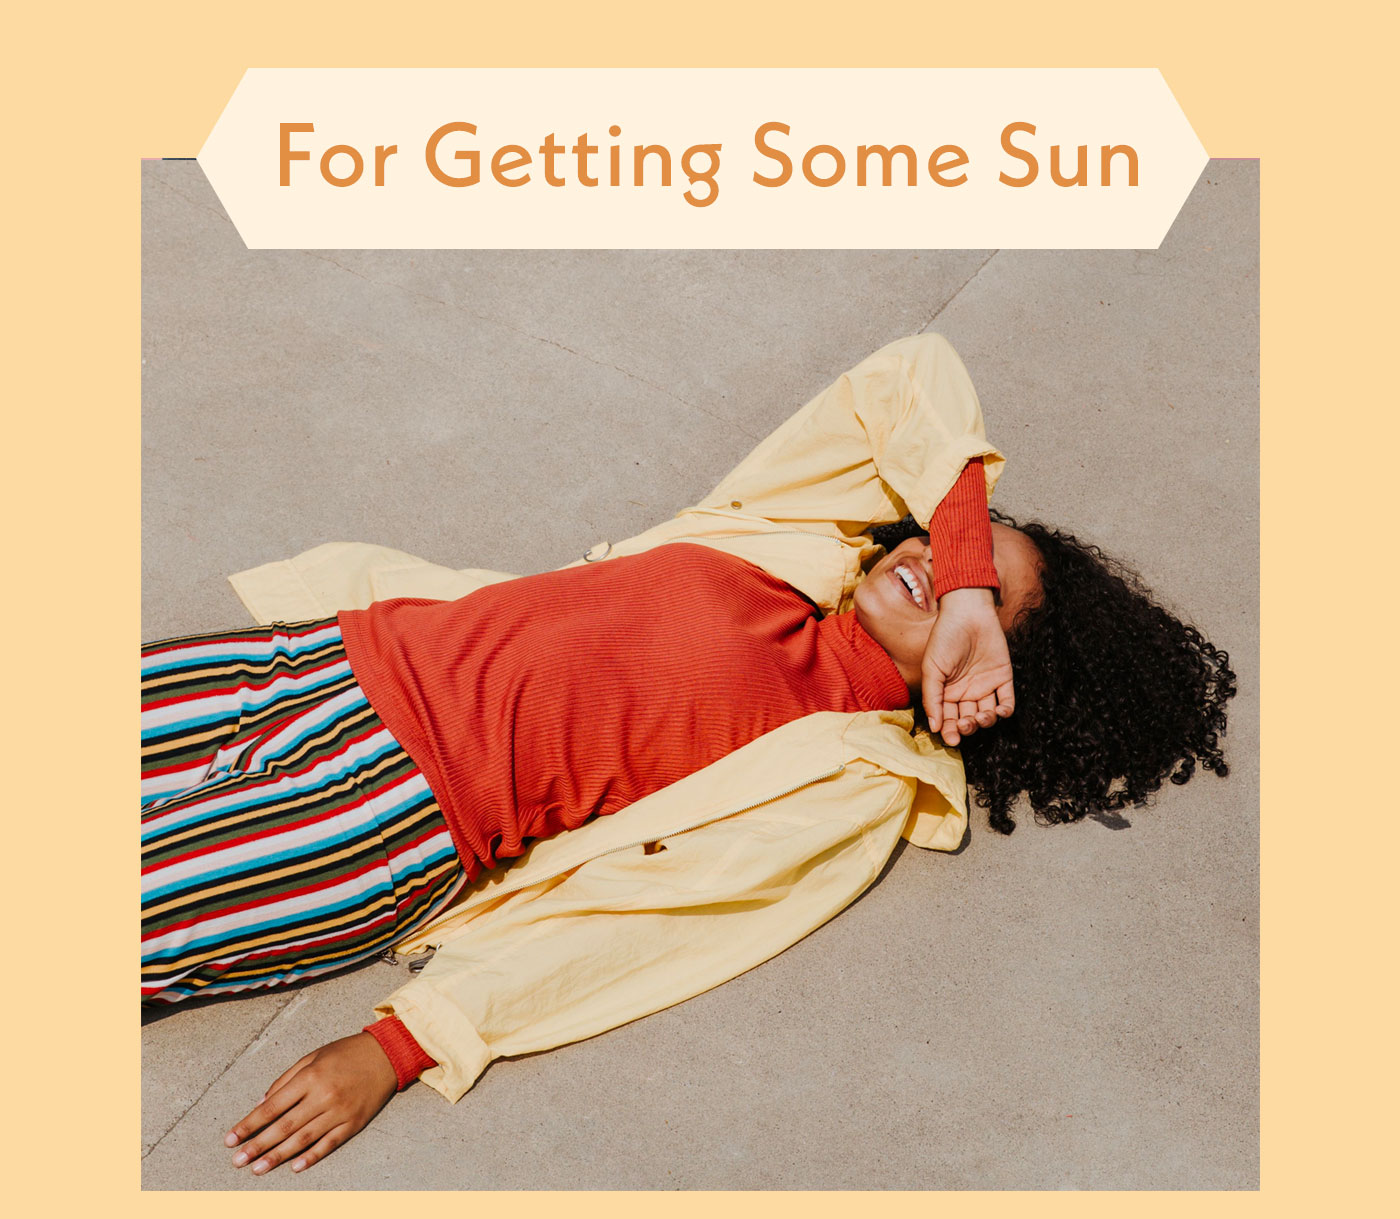 For Getting Some Sun